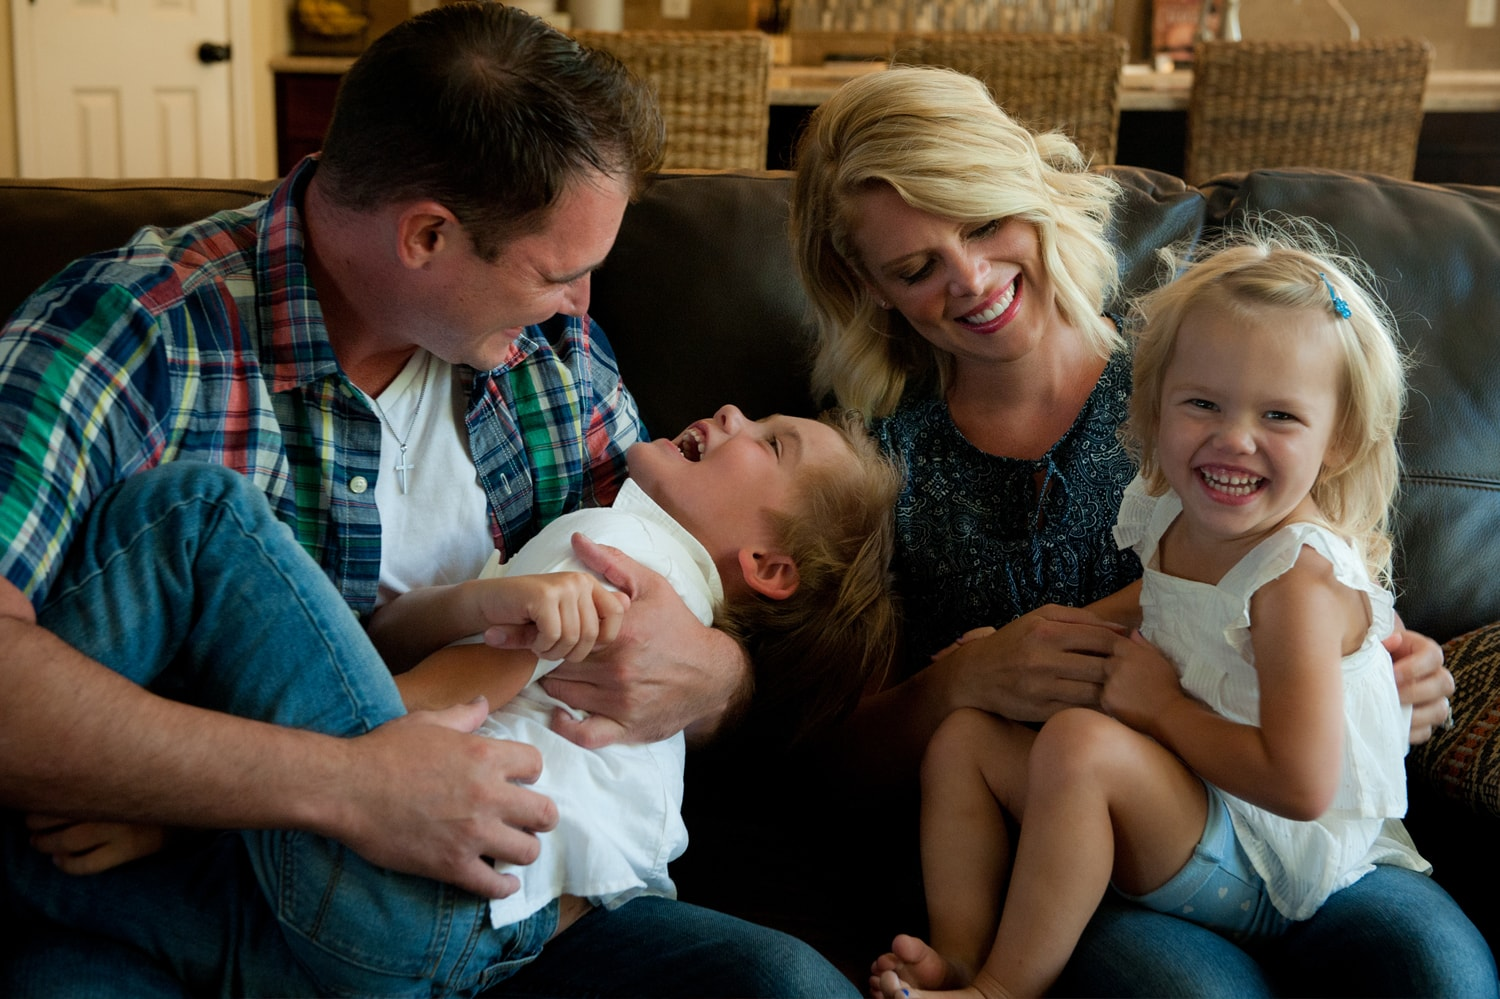 A family with young children laughing.